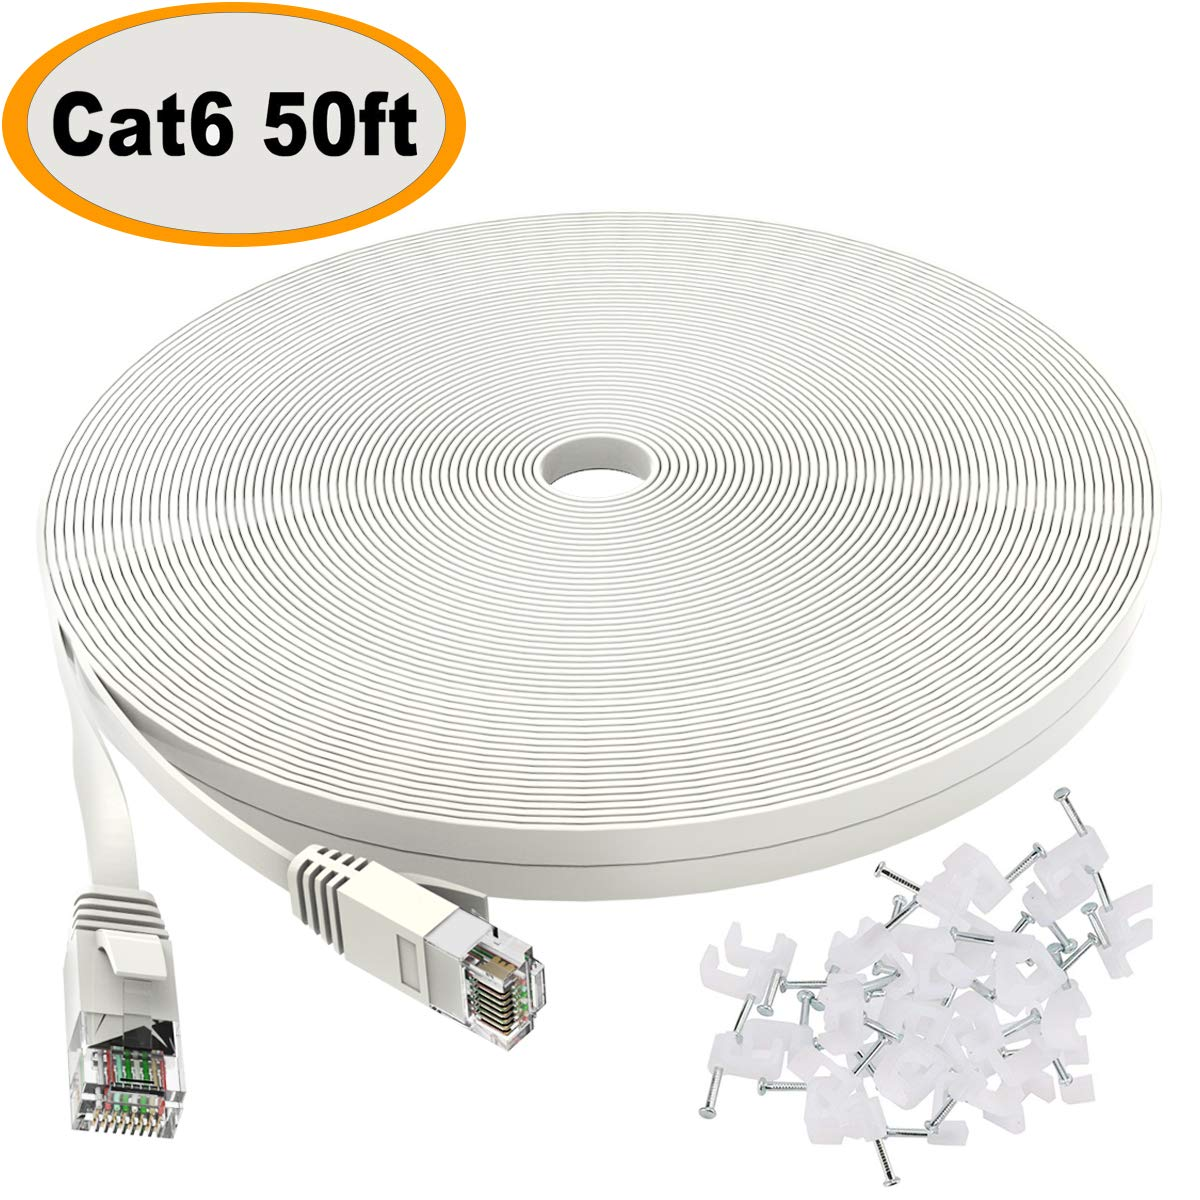 Best Rated In Cat 6 Ethernet Cables Helpful Customer Reviews Cat6 Wiring Cable 50 Ft White Flat Internet Network Lan Patch Cords Solid High Speed Computer Wire With Clips Snagless Rj45 Connectors For